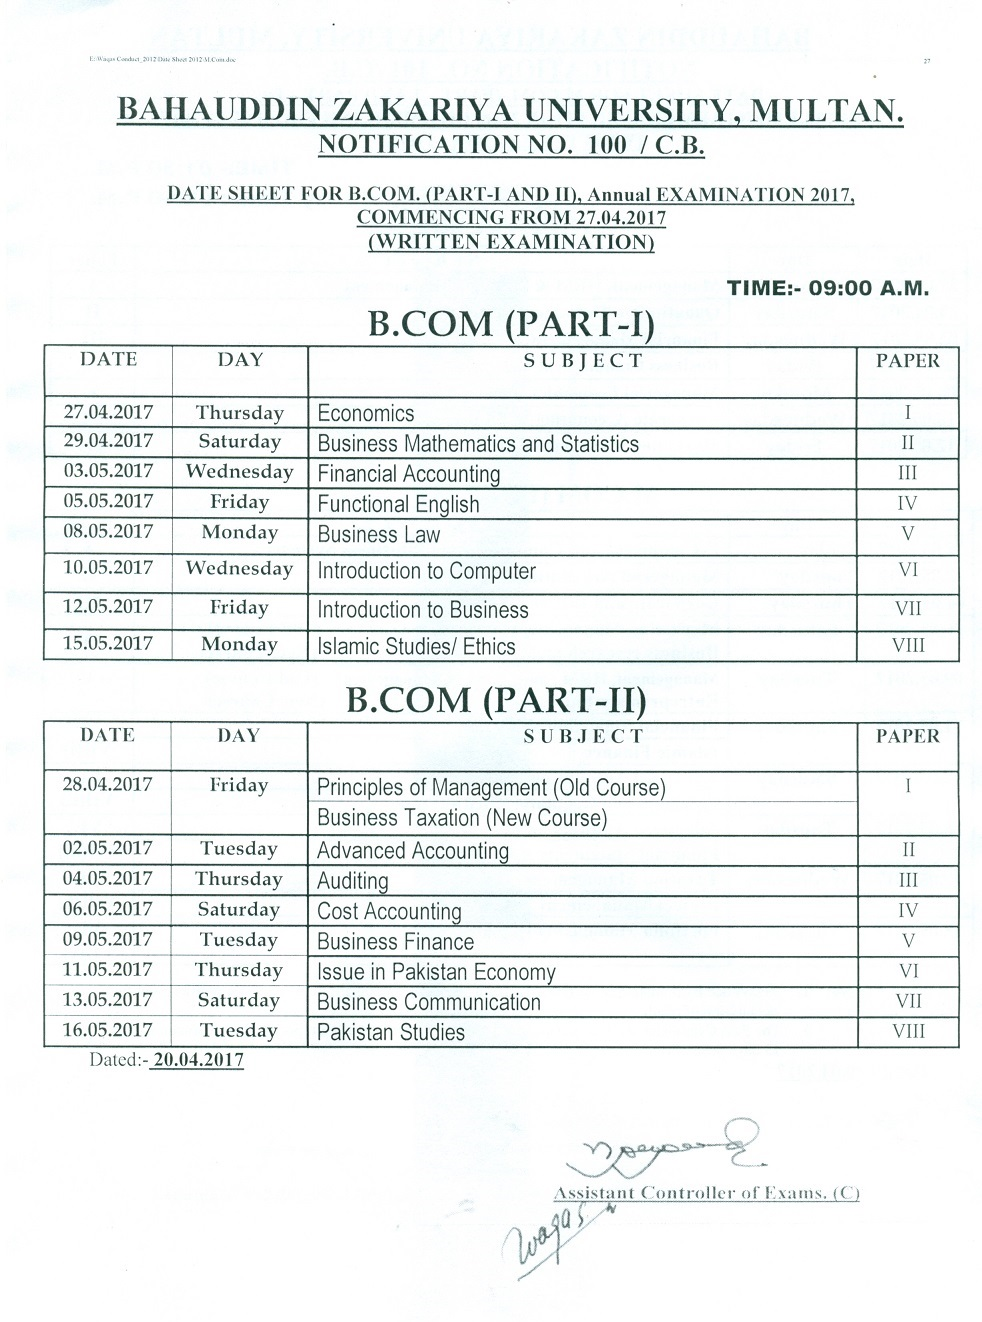 BZU Multan B.Com Part 1, 2 Date Sheet 2017 Online